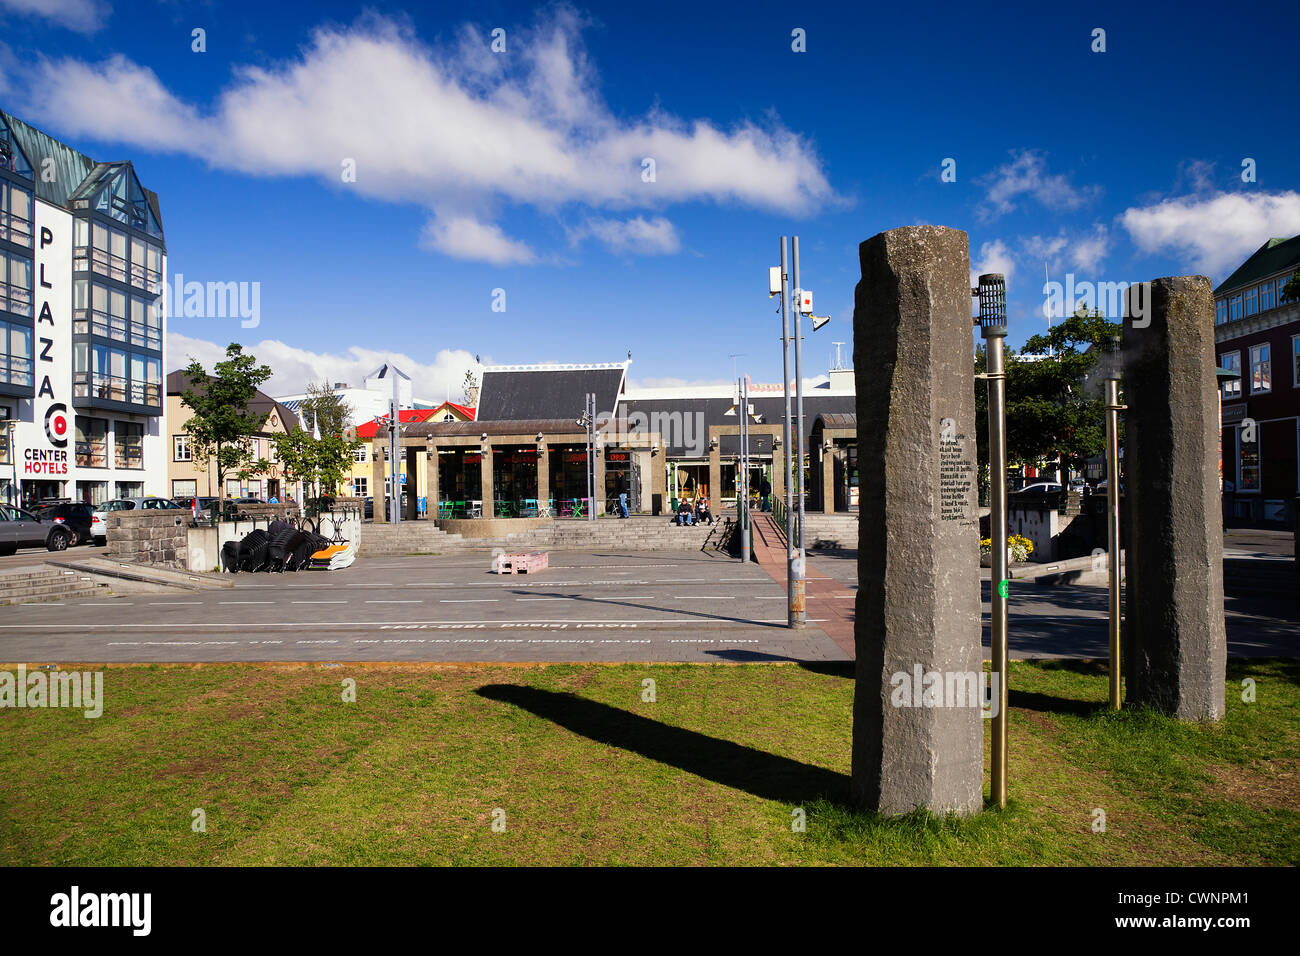 Ingólfstorg square, Reykjavik, Iceland, where geothermal energy is released through billowing steam vents - Stock Image